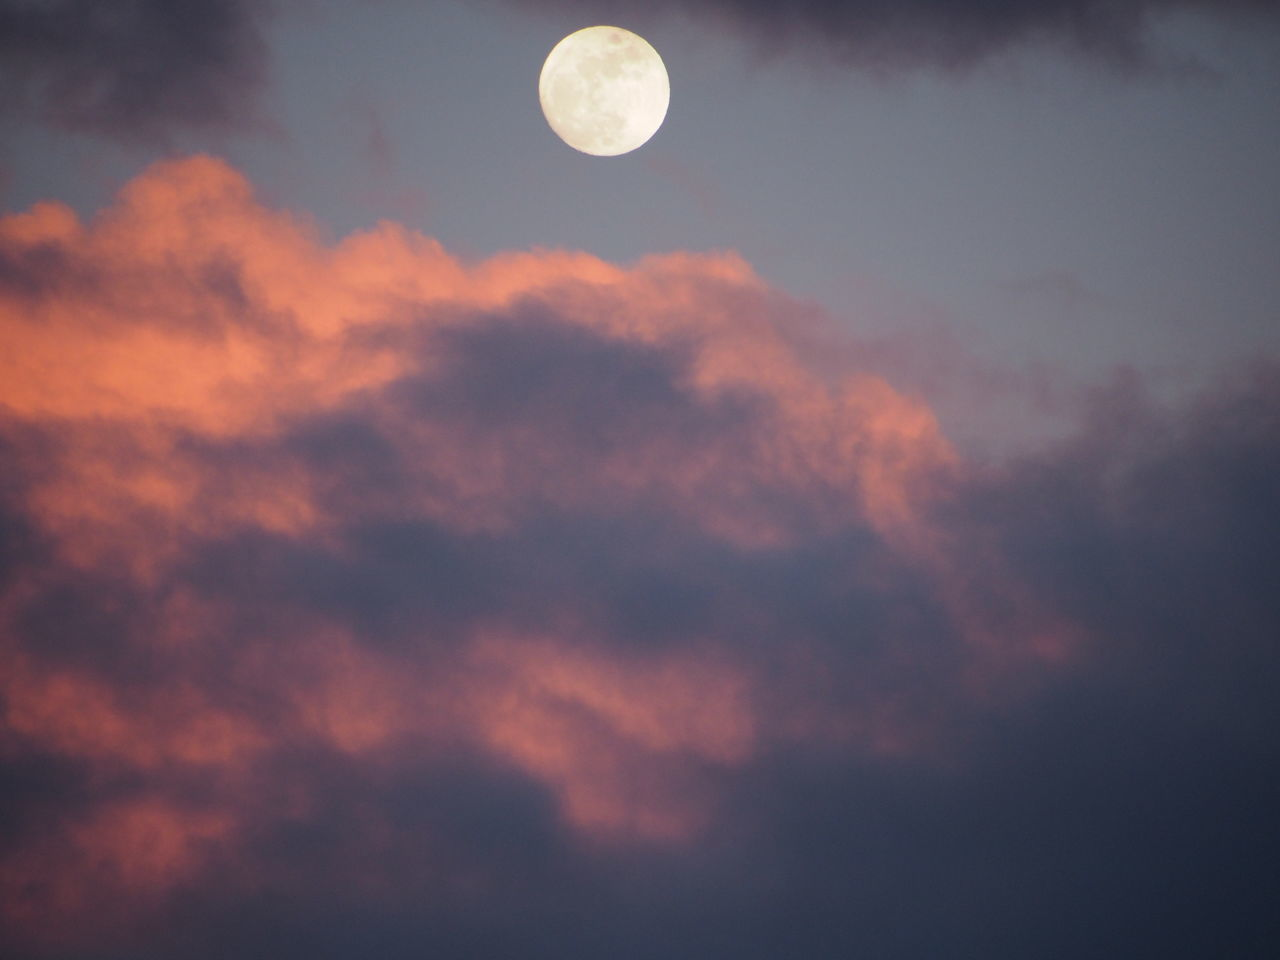 Astronomy Beauty In Nature Cloud - Sky Dramatic Sky Full Moon Behind Clouds Full Moon Rising Idyllic Moon Nature Orange Sky Outdoors Scenics Sky Tranquil Scene Tranquility Tripod At Its Finest